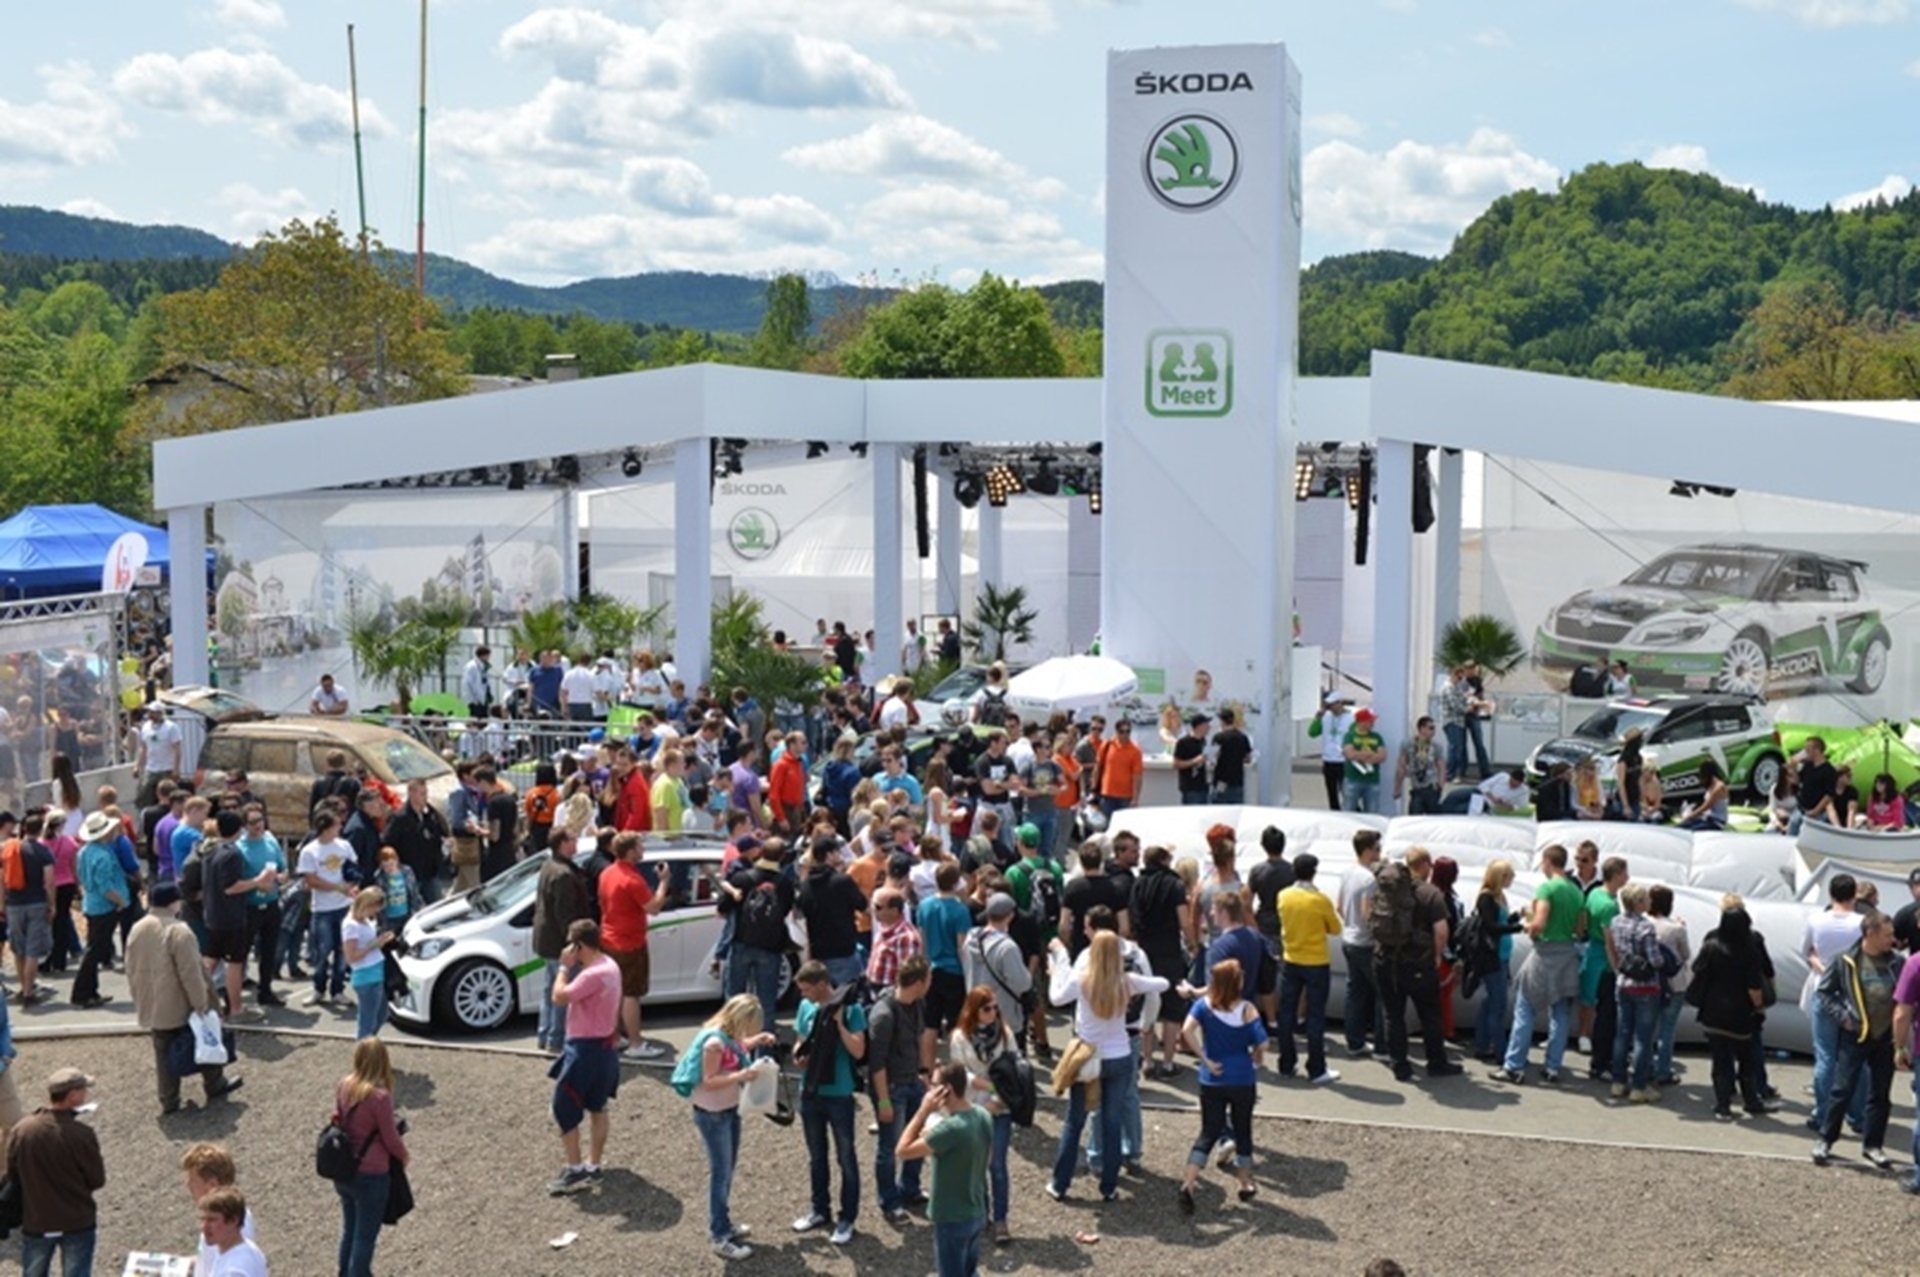 SKODA WORTHERSEE